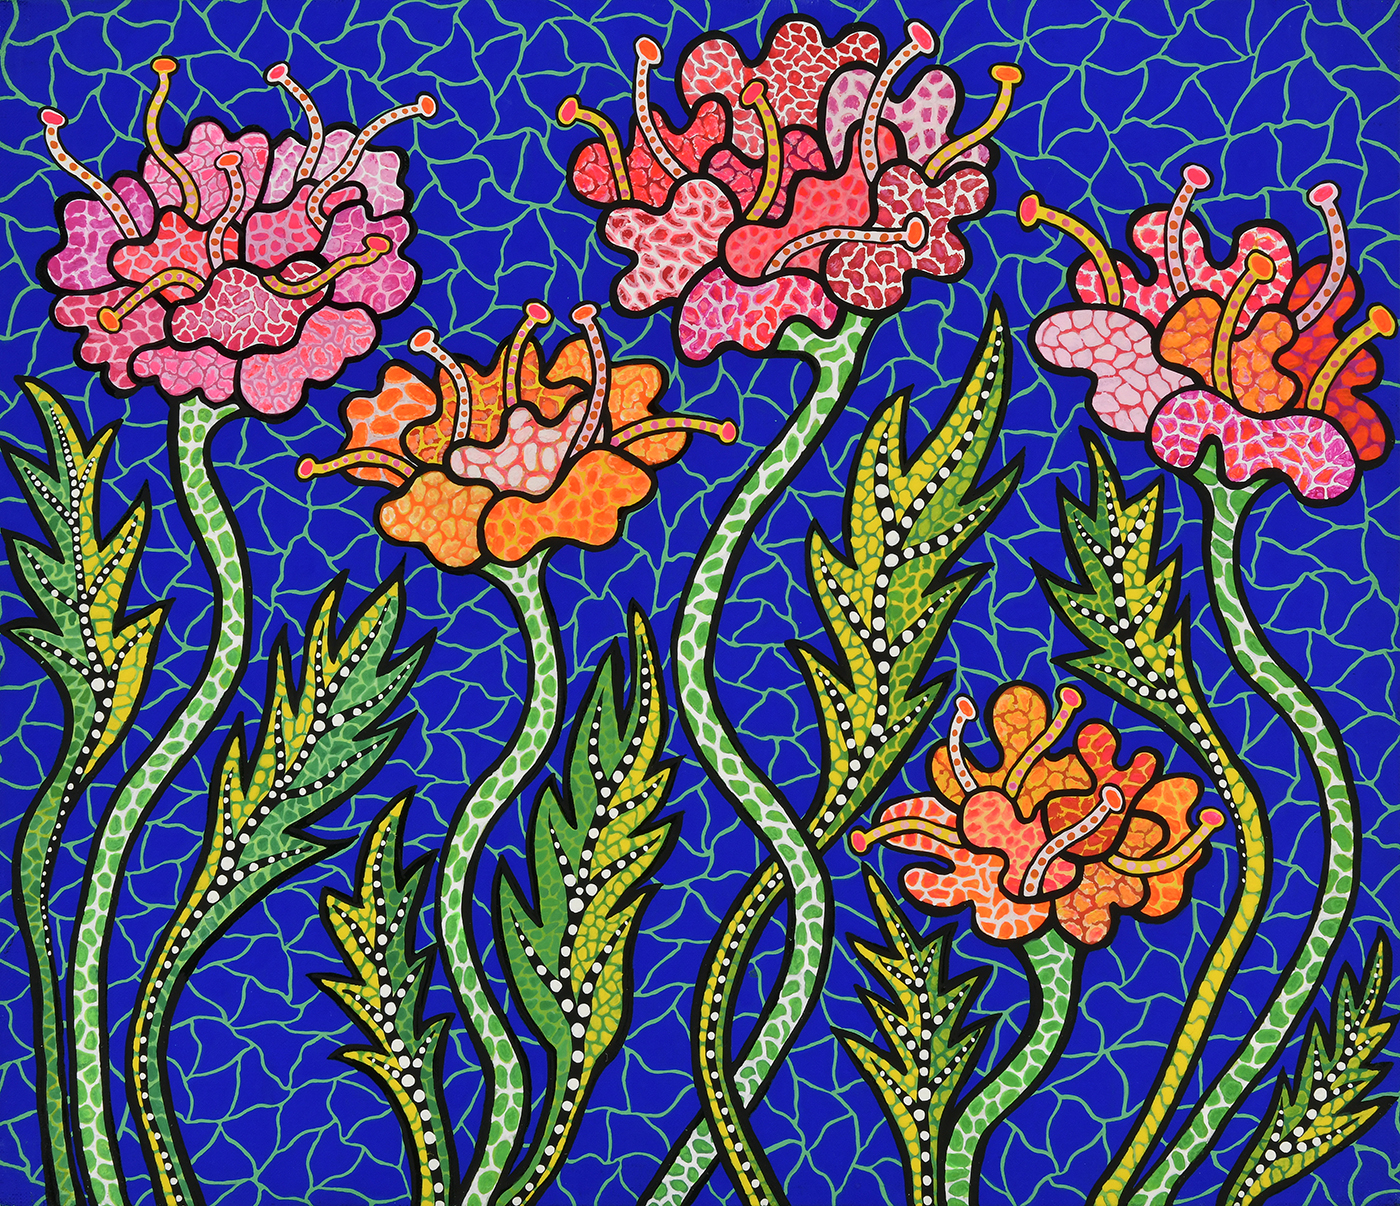 Summer Flowers, 1988. Acrylic on canvas. Collection of the artist. © YAYOI KUSAMA Flower Obsession (Sunflowers), 2000. Video Still. Collection of the artist. © YAYOI KUSAMA 2021